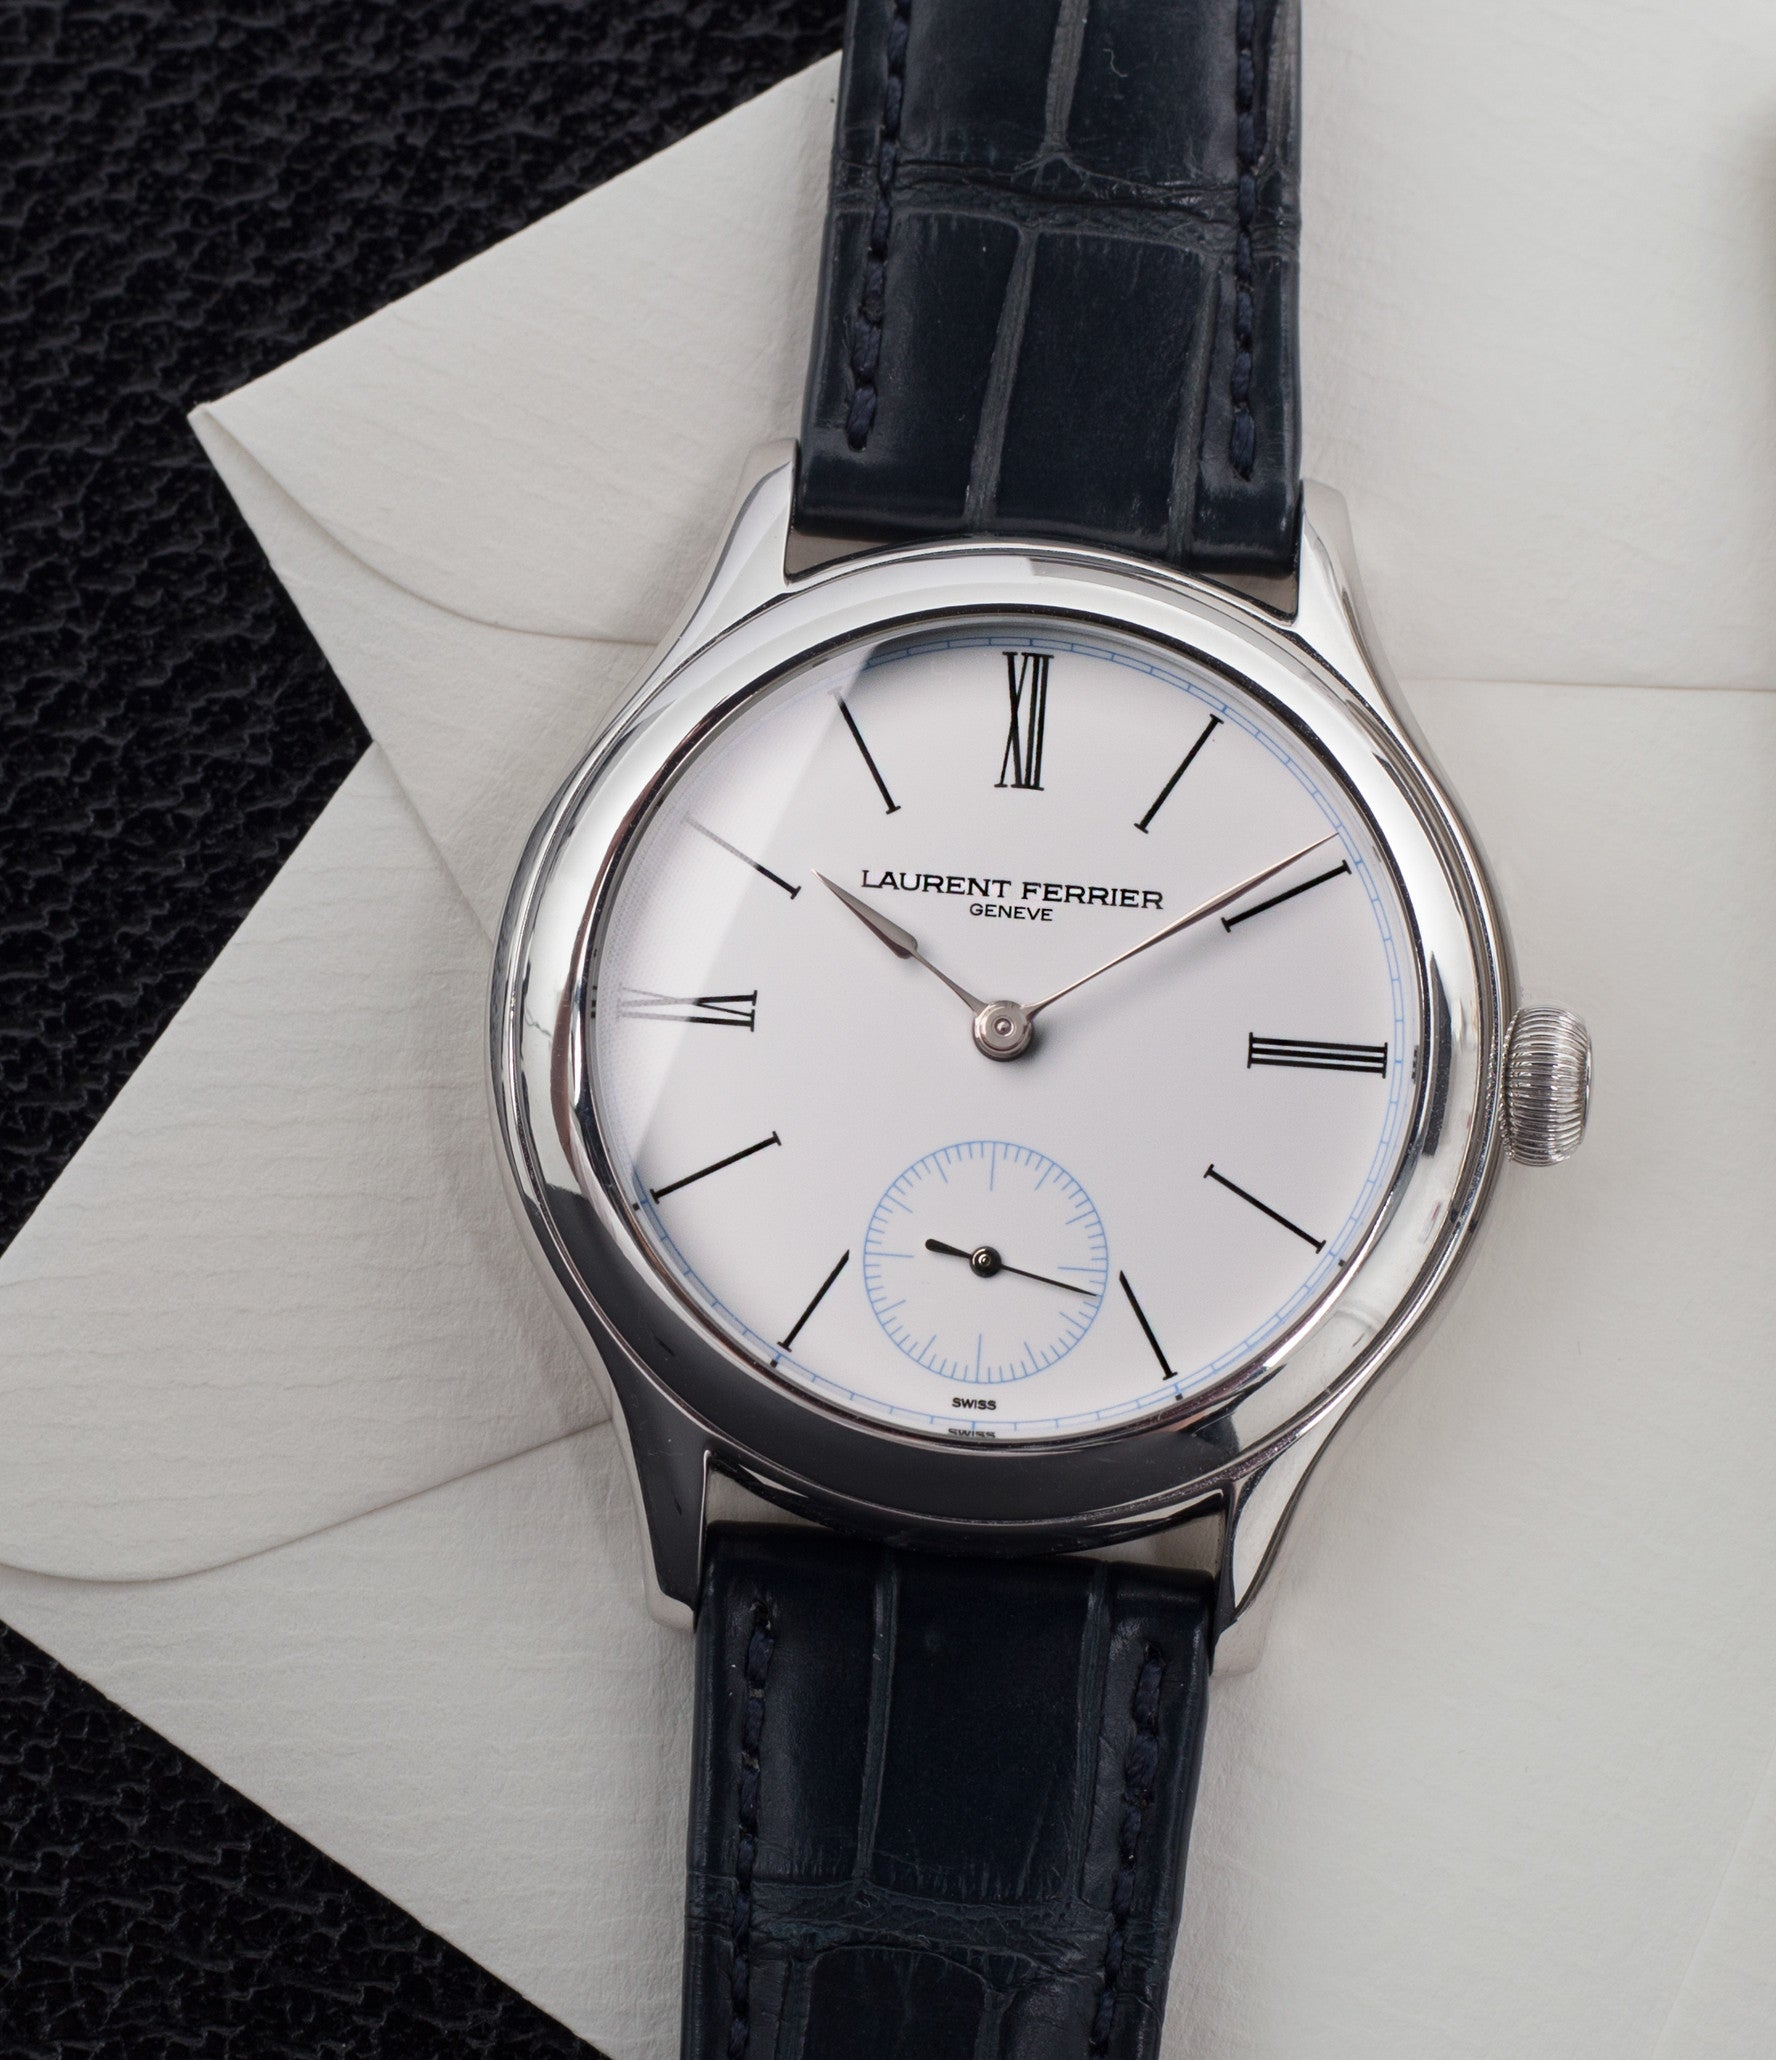 Grand Feu white enamel dial Laurent Ferrier Galet Micro-rotor LCF006 platinum limited edition watch for sale online at A Collected Man London specialist independent watchmakers